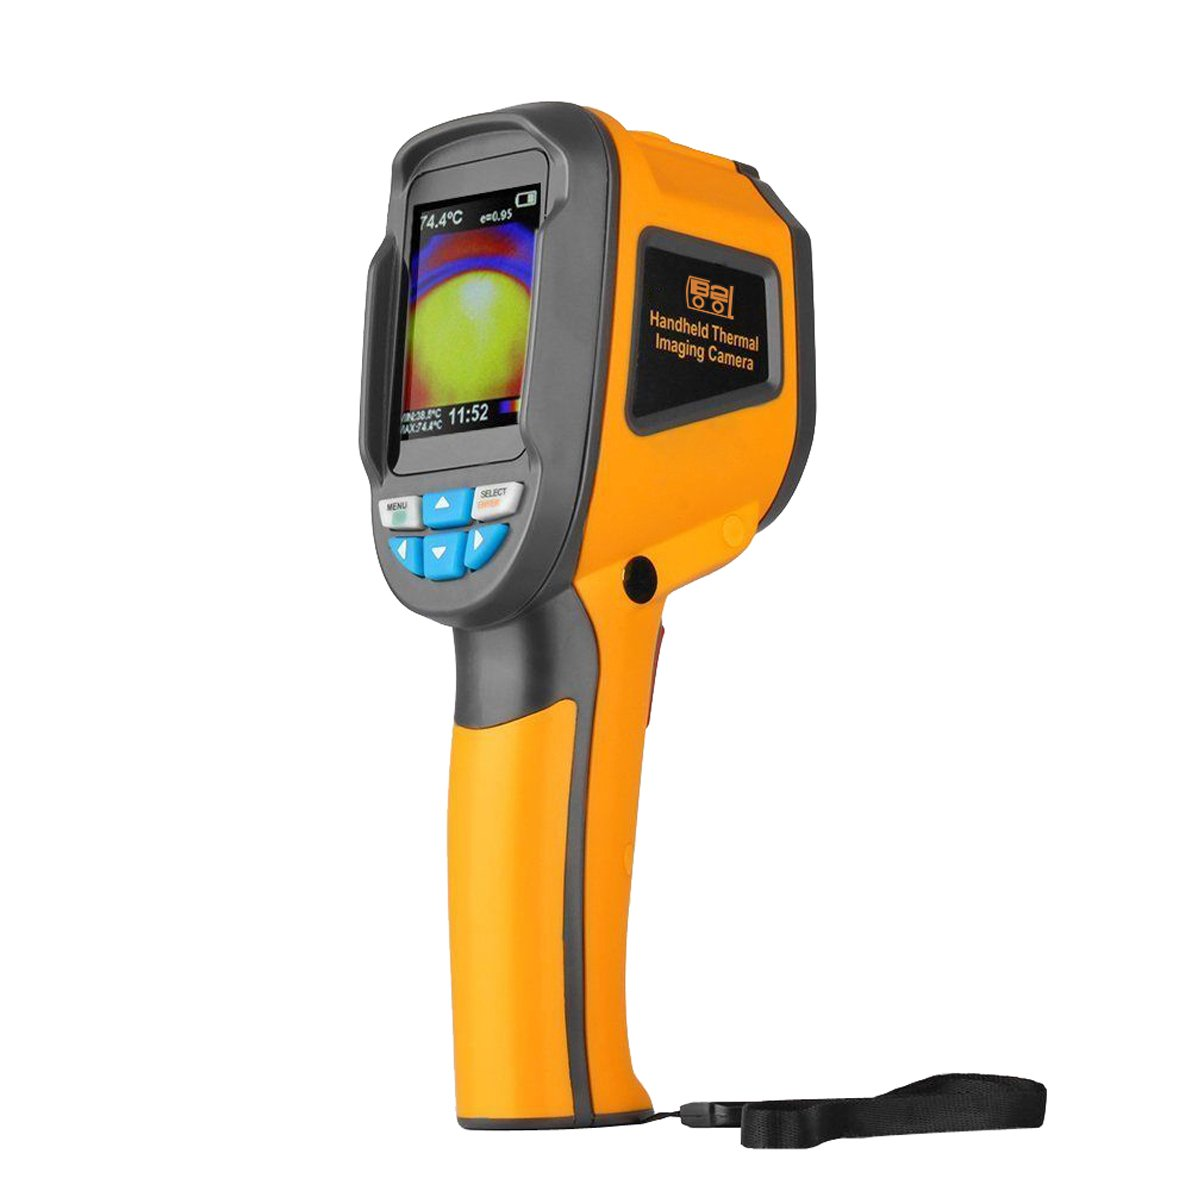 B2COOL Lnfraredgrip Non-contact Visual image Infrared Temperature Gun Thermometer Range -4℉~ 572℉ (-20~300°C) & IR Resolution 3600 Pixels